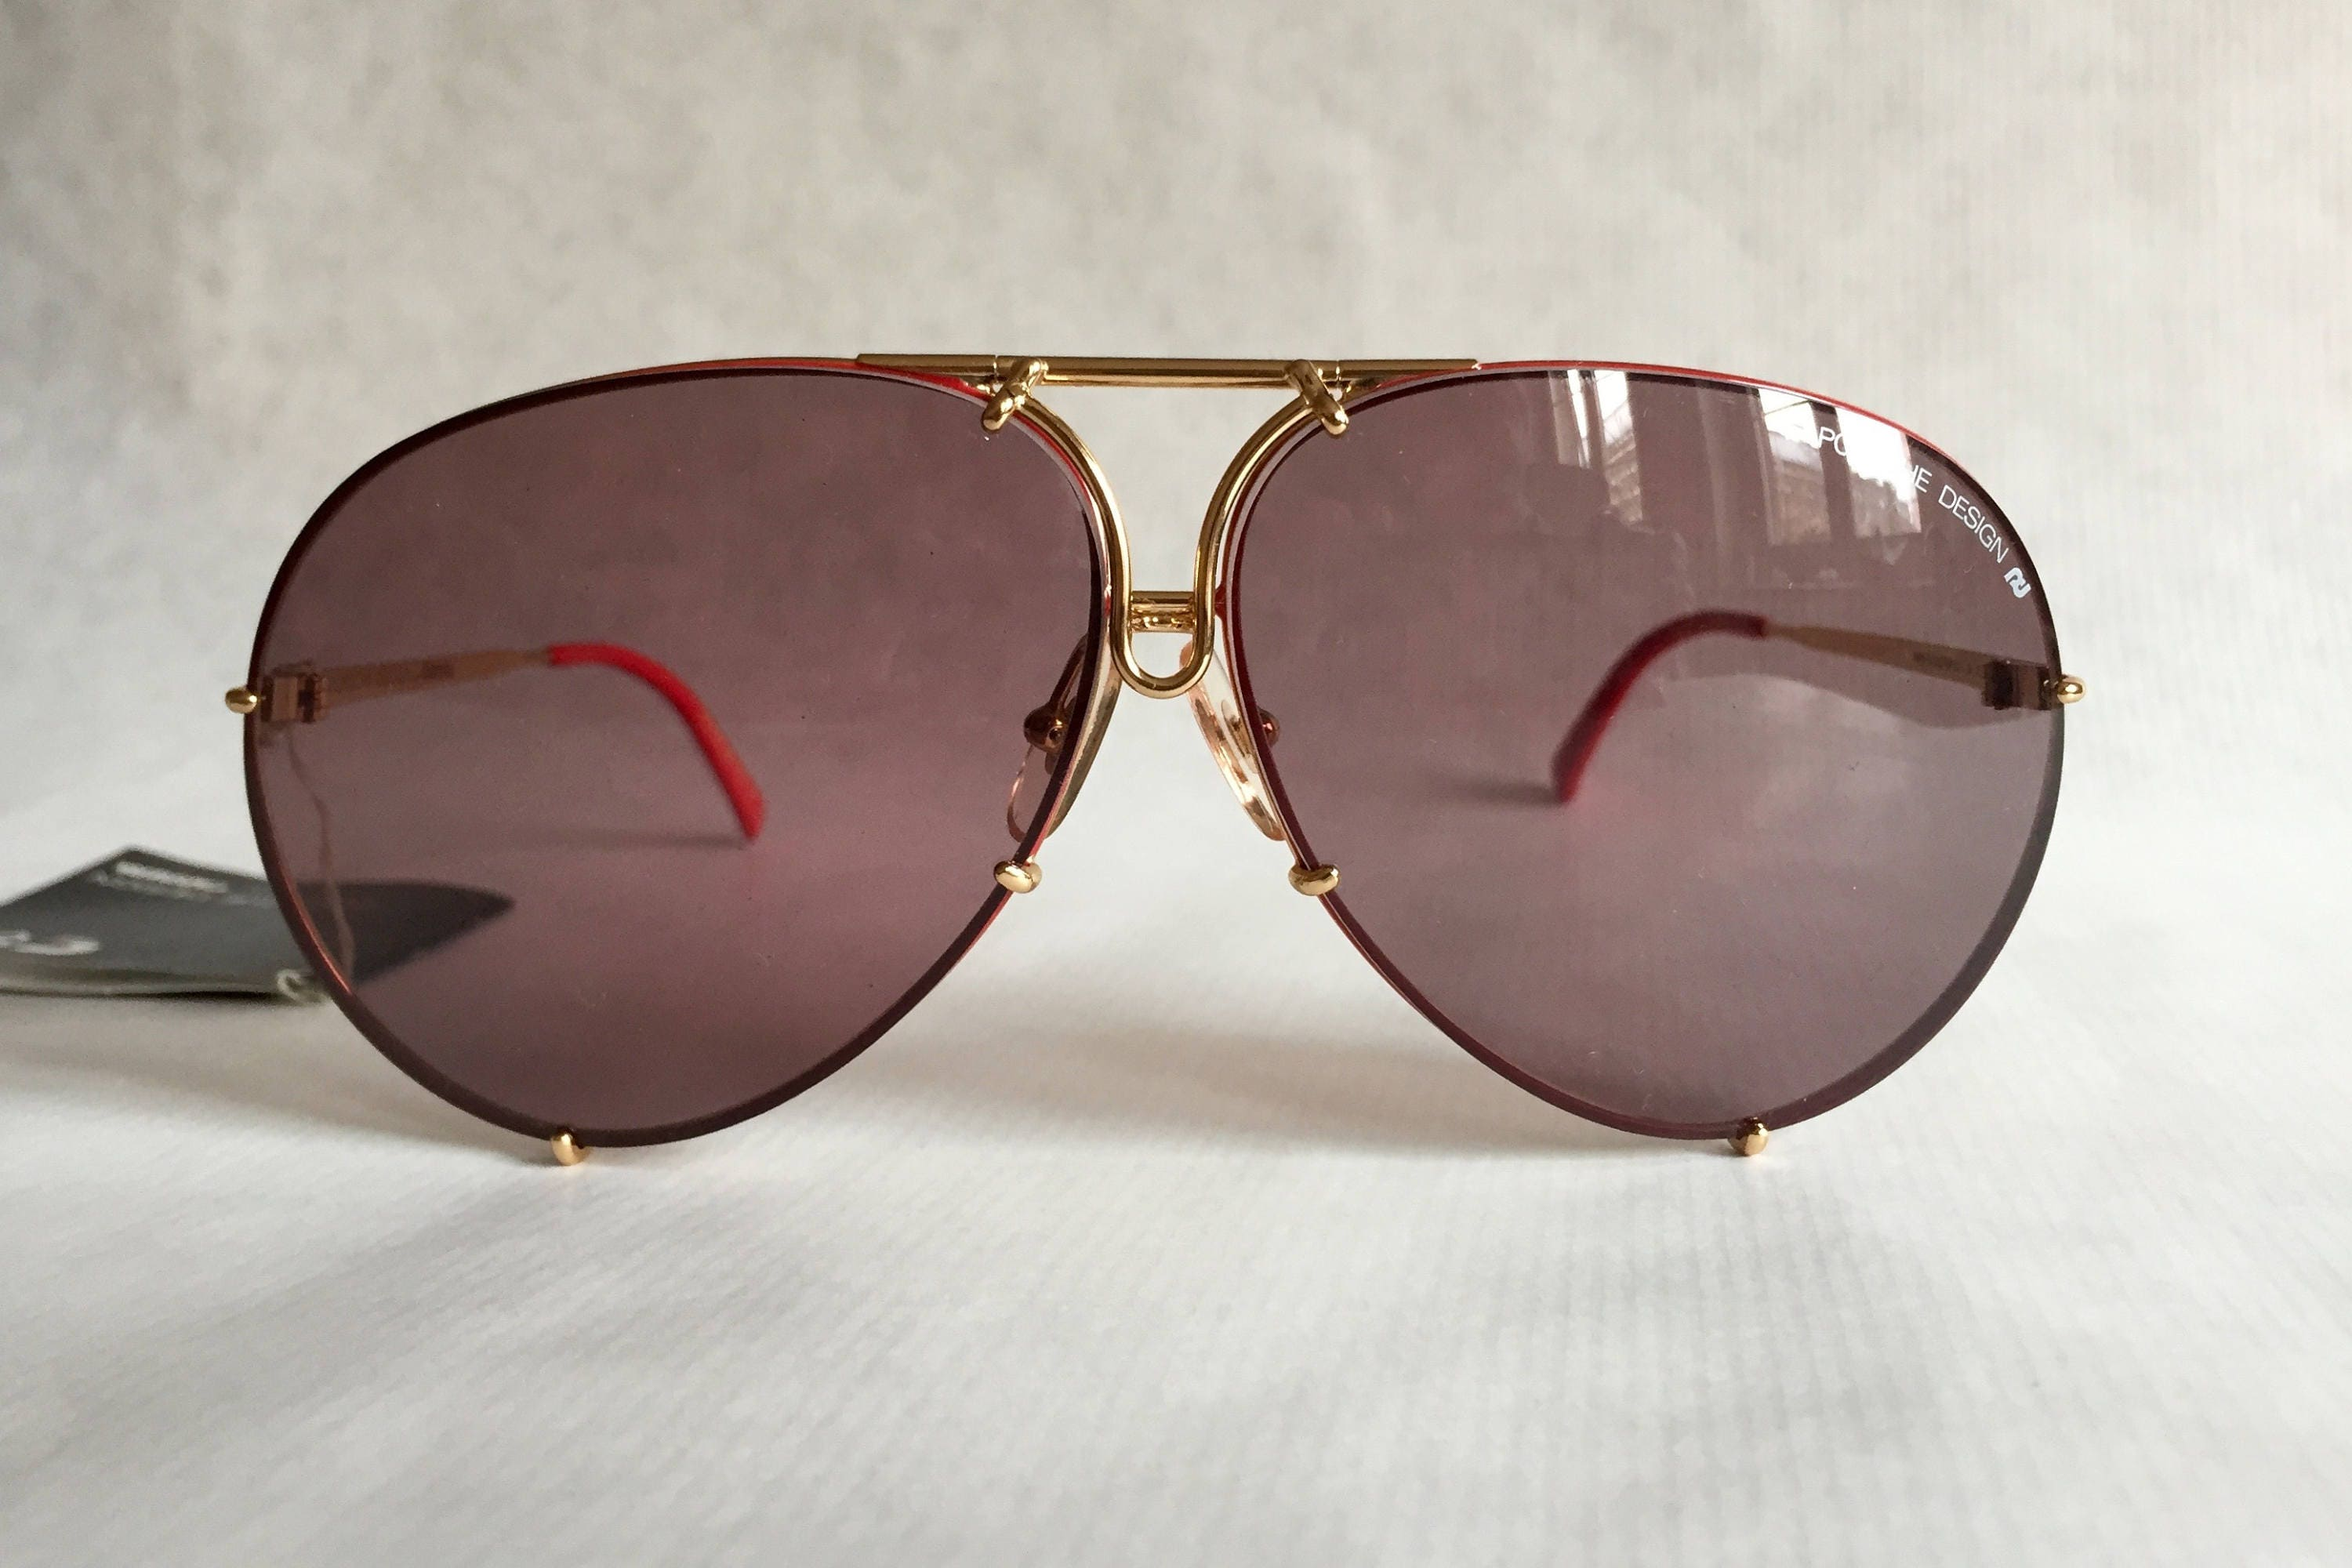 3af8b9730b3e Porsche Design 5621 36 Vintage Sunglasses Full Set with 4 Pairs of Lenses  New Old Stock